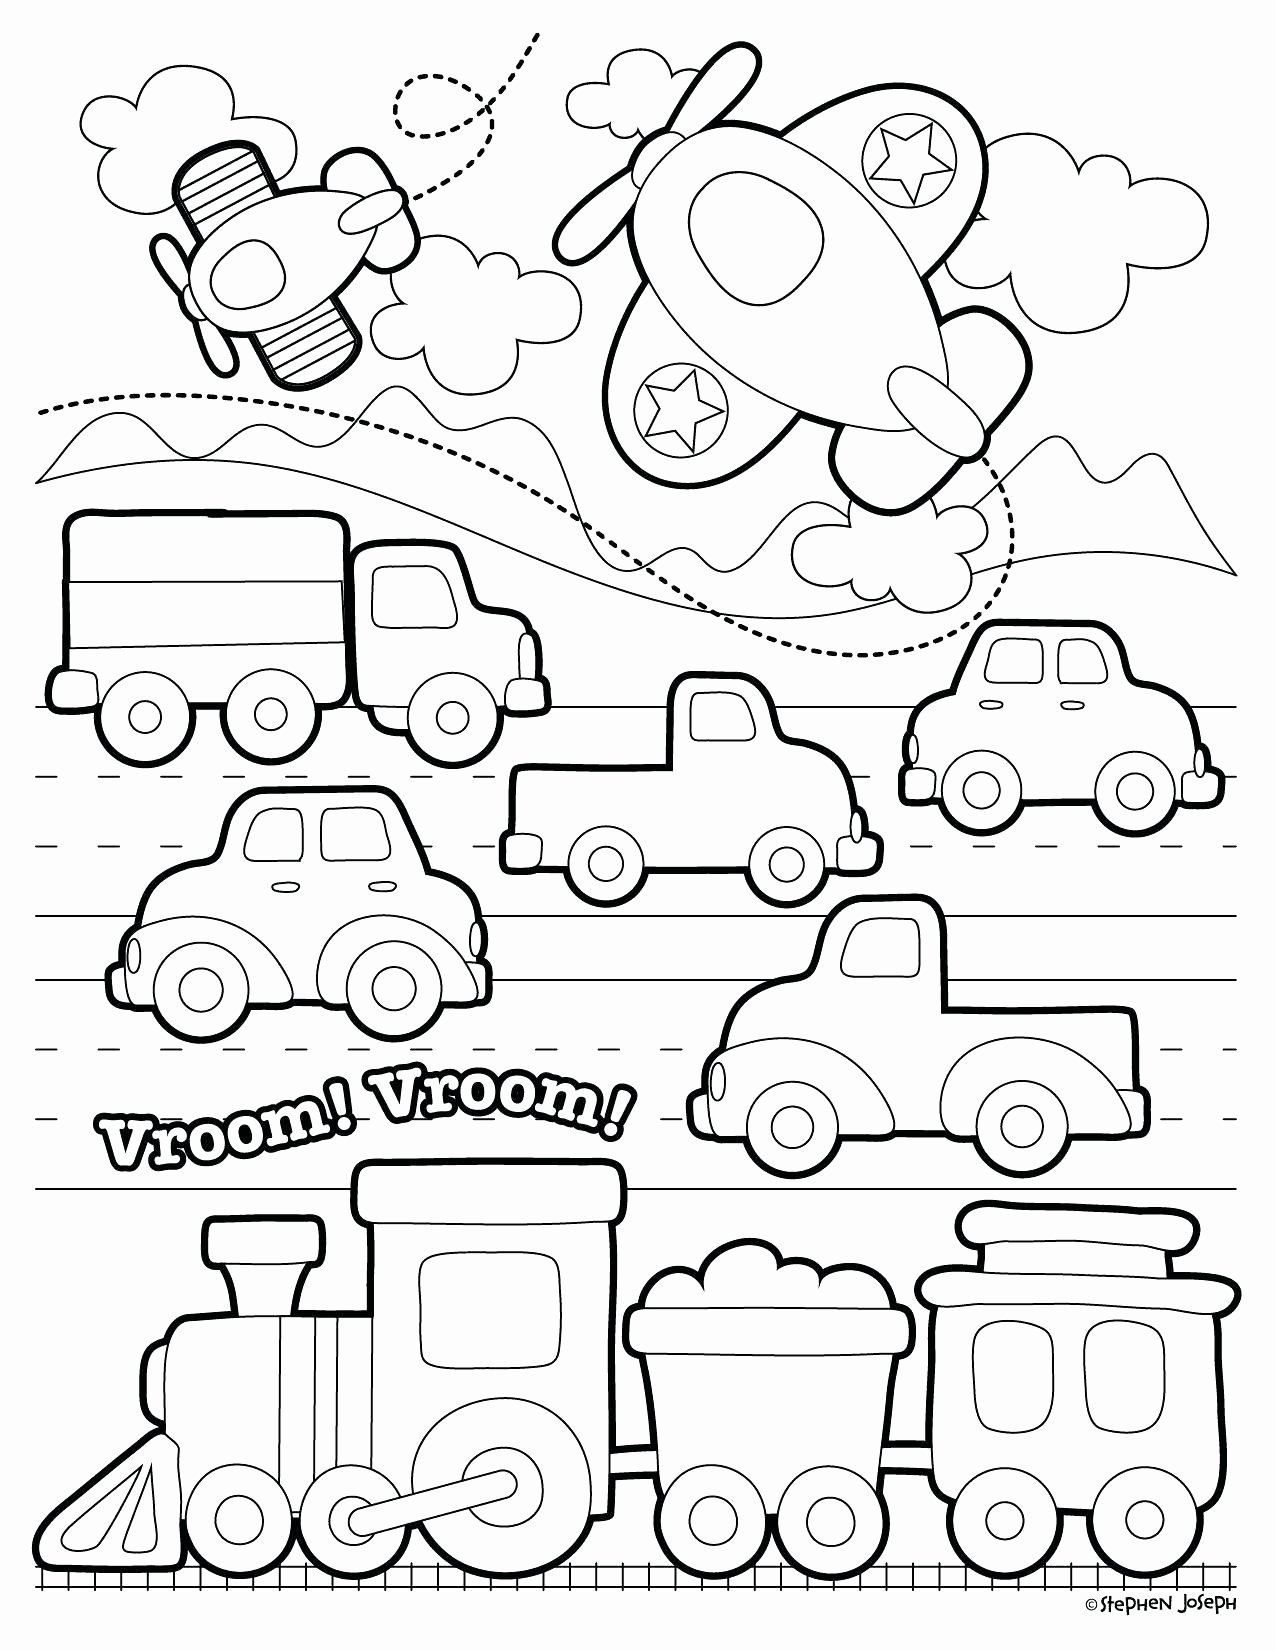 Coloring For Toy Poodle 2020 Preschool Coloring Pages